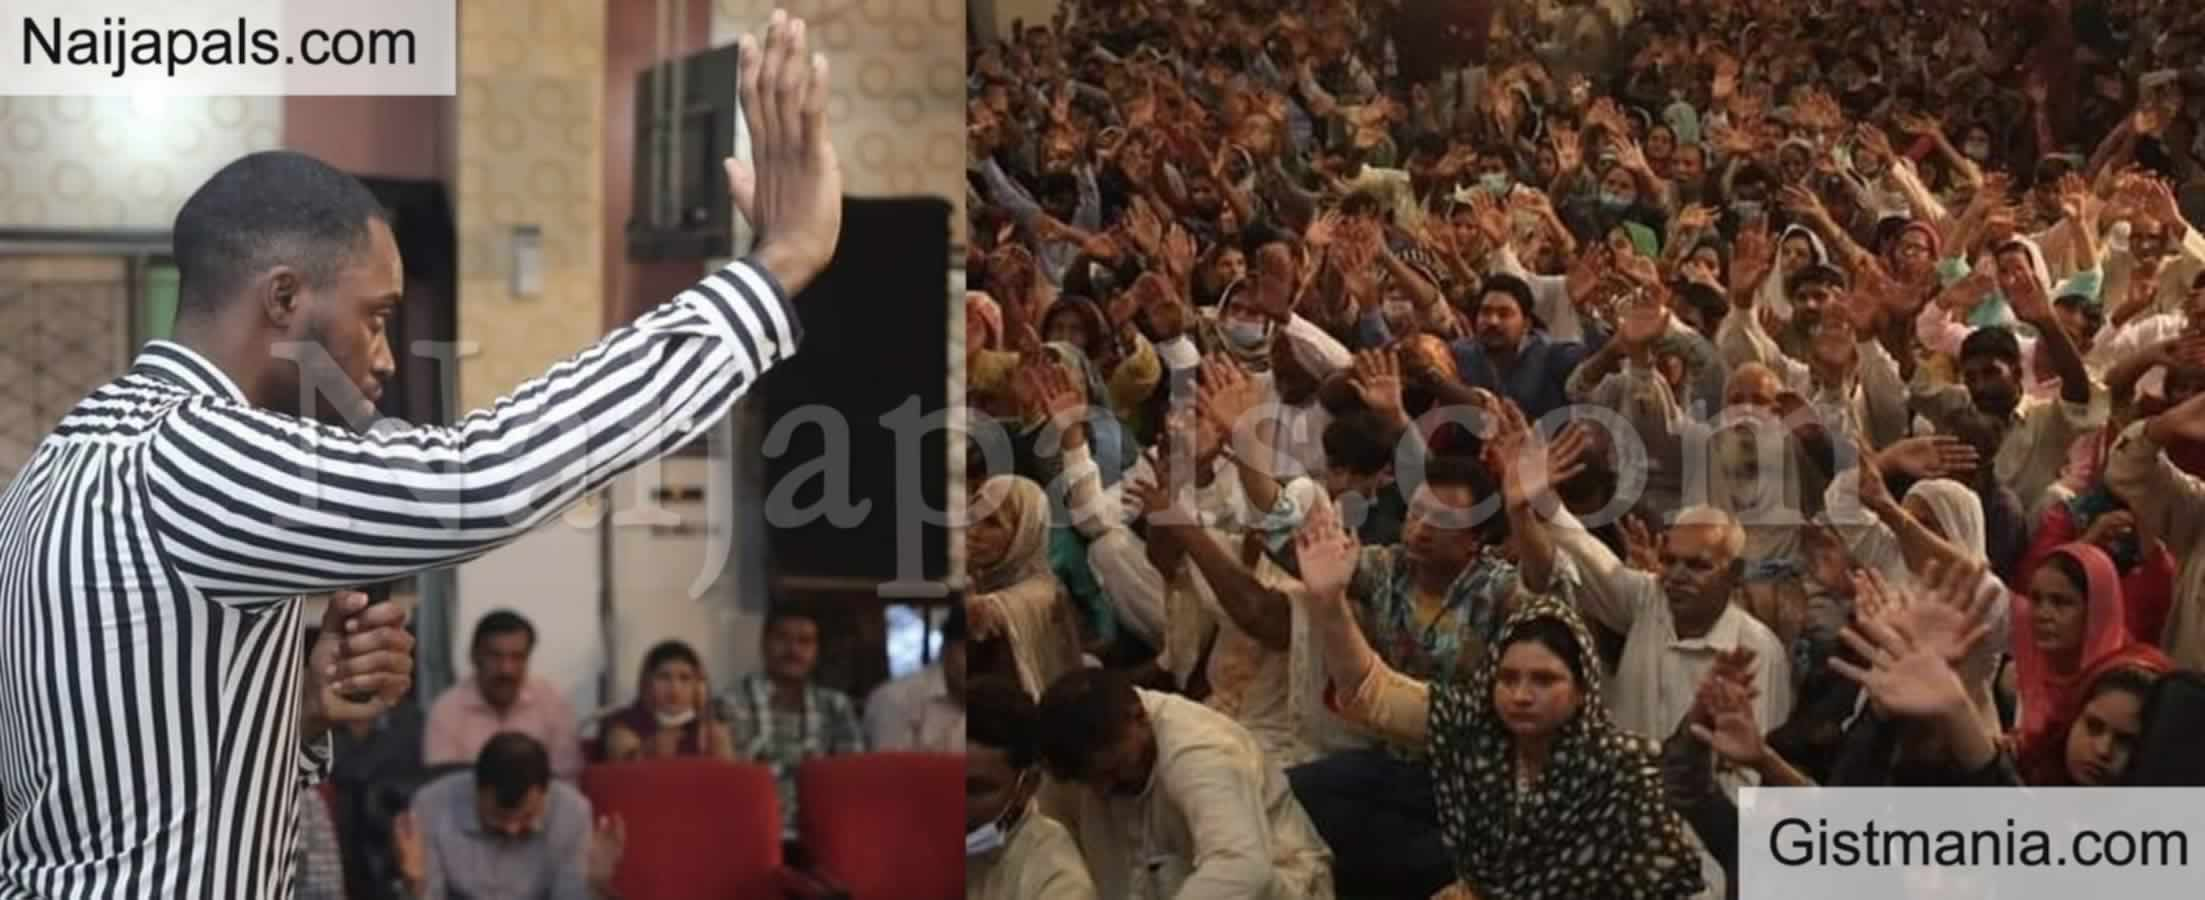 <img alt='.' class='lazyload' data-src='https://img.gistmania.com/emot/thumbs_up.gif' /> <b>29 Year Old Alberto Mvila Risks Life To Hold Crusade In Pakistan, Wins 16000 People For Christ</b>